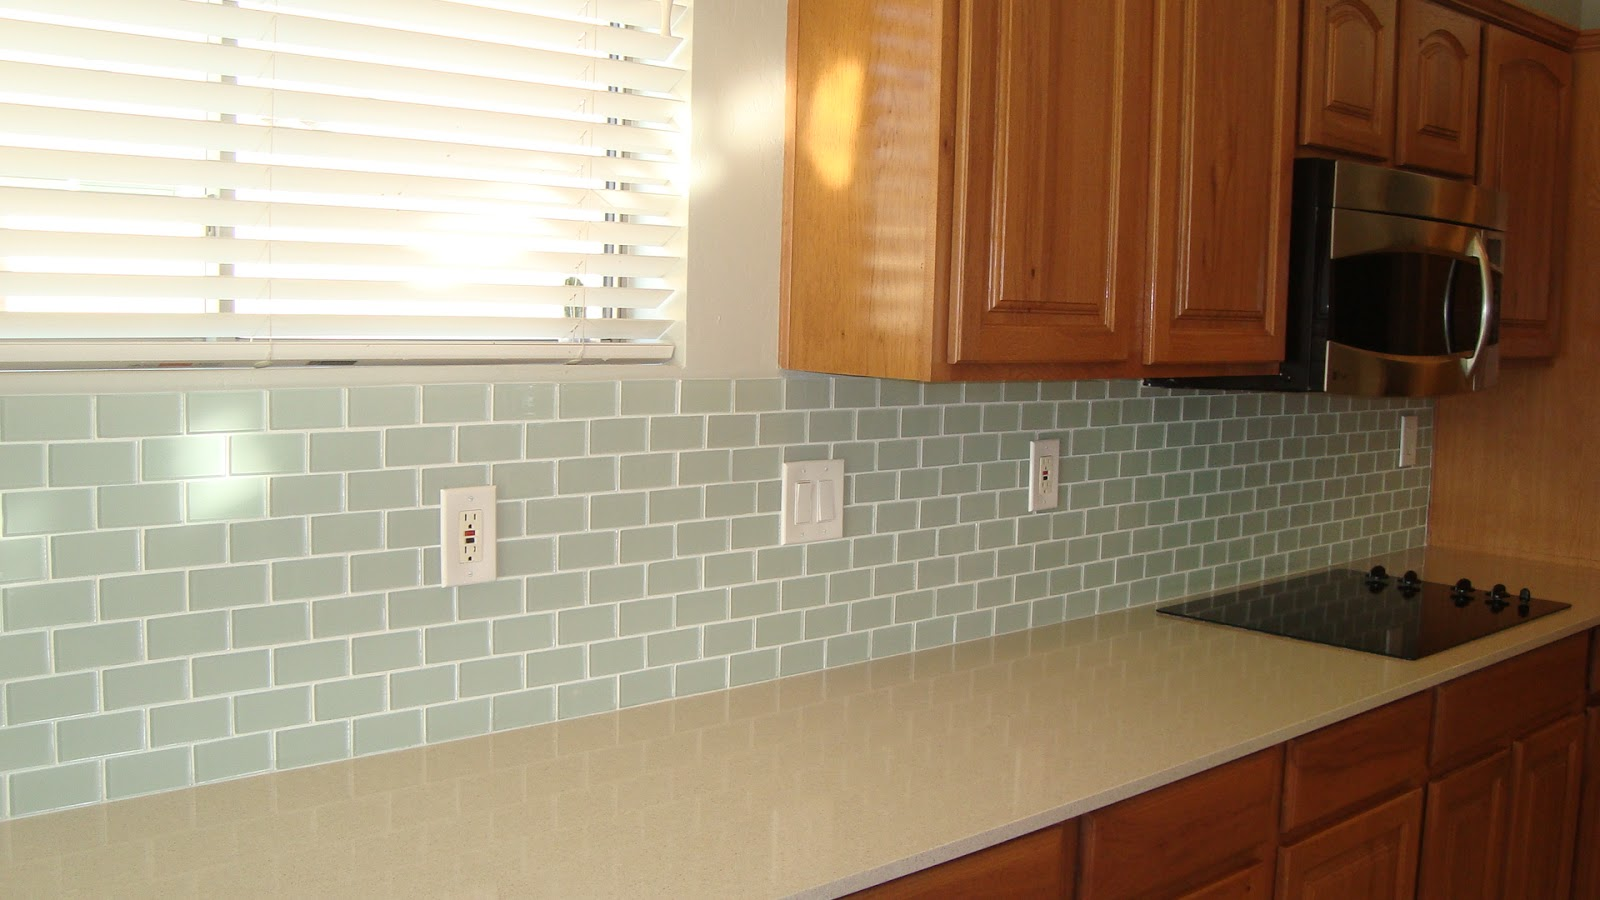 Christine S Favorite Things Glass Tile Backsplash